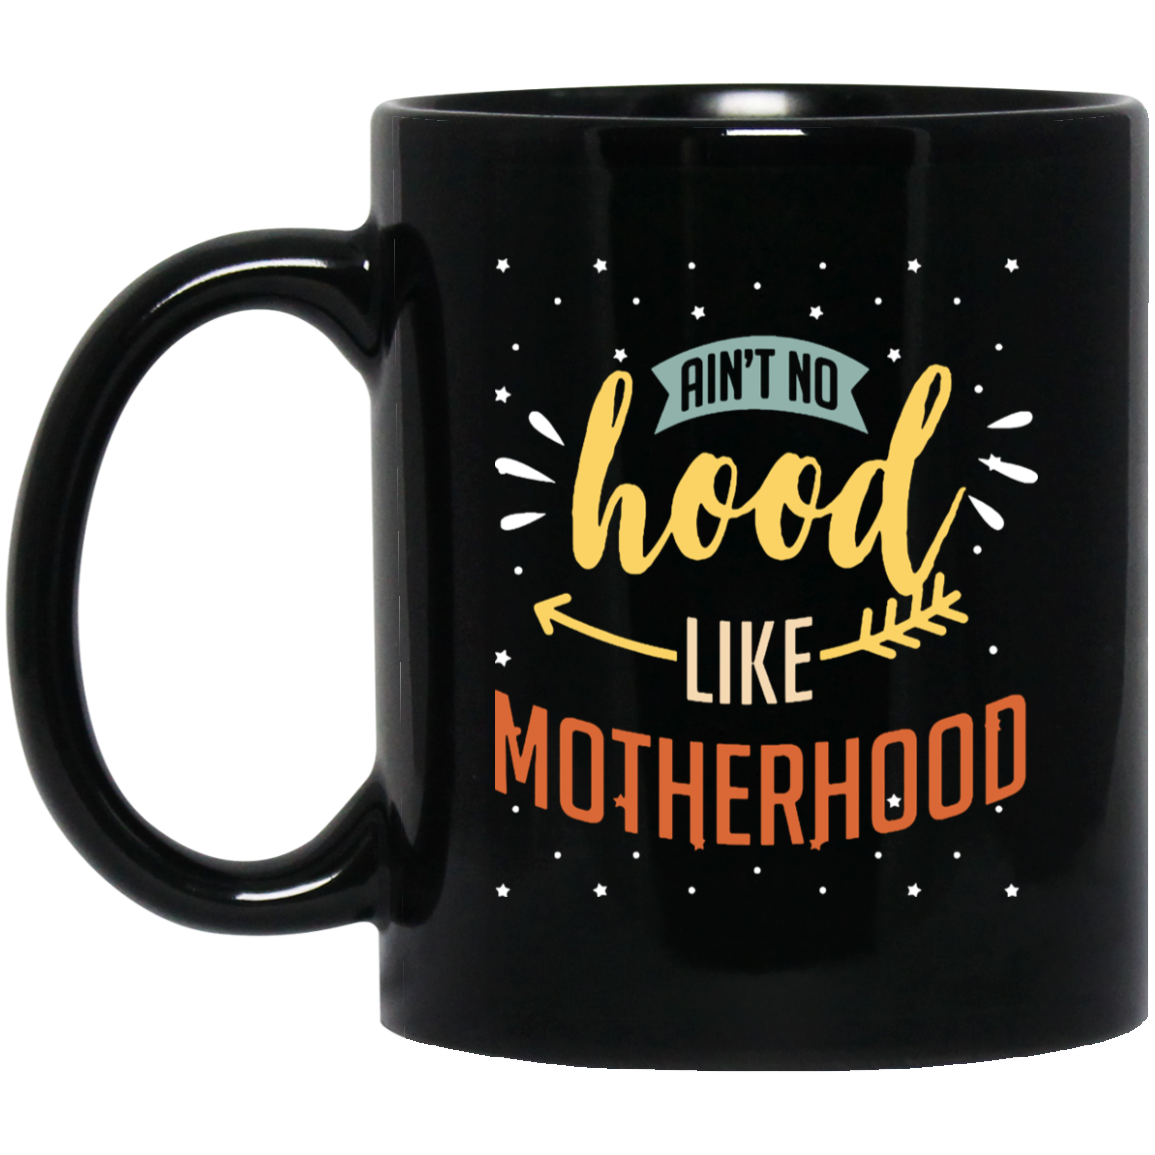 Ain't No Hood Like Motherhood Coffee Mug, Tea Mug